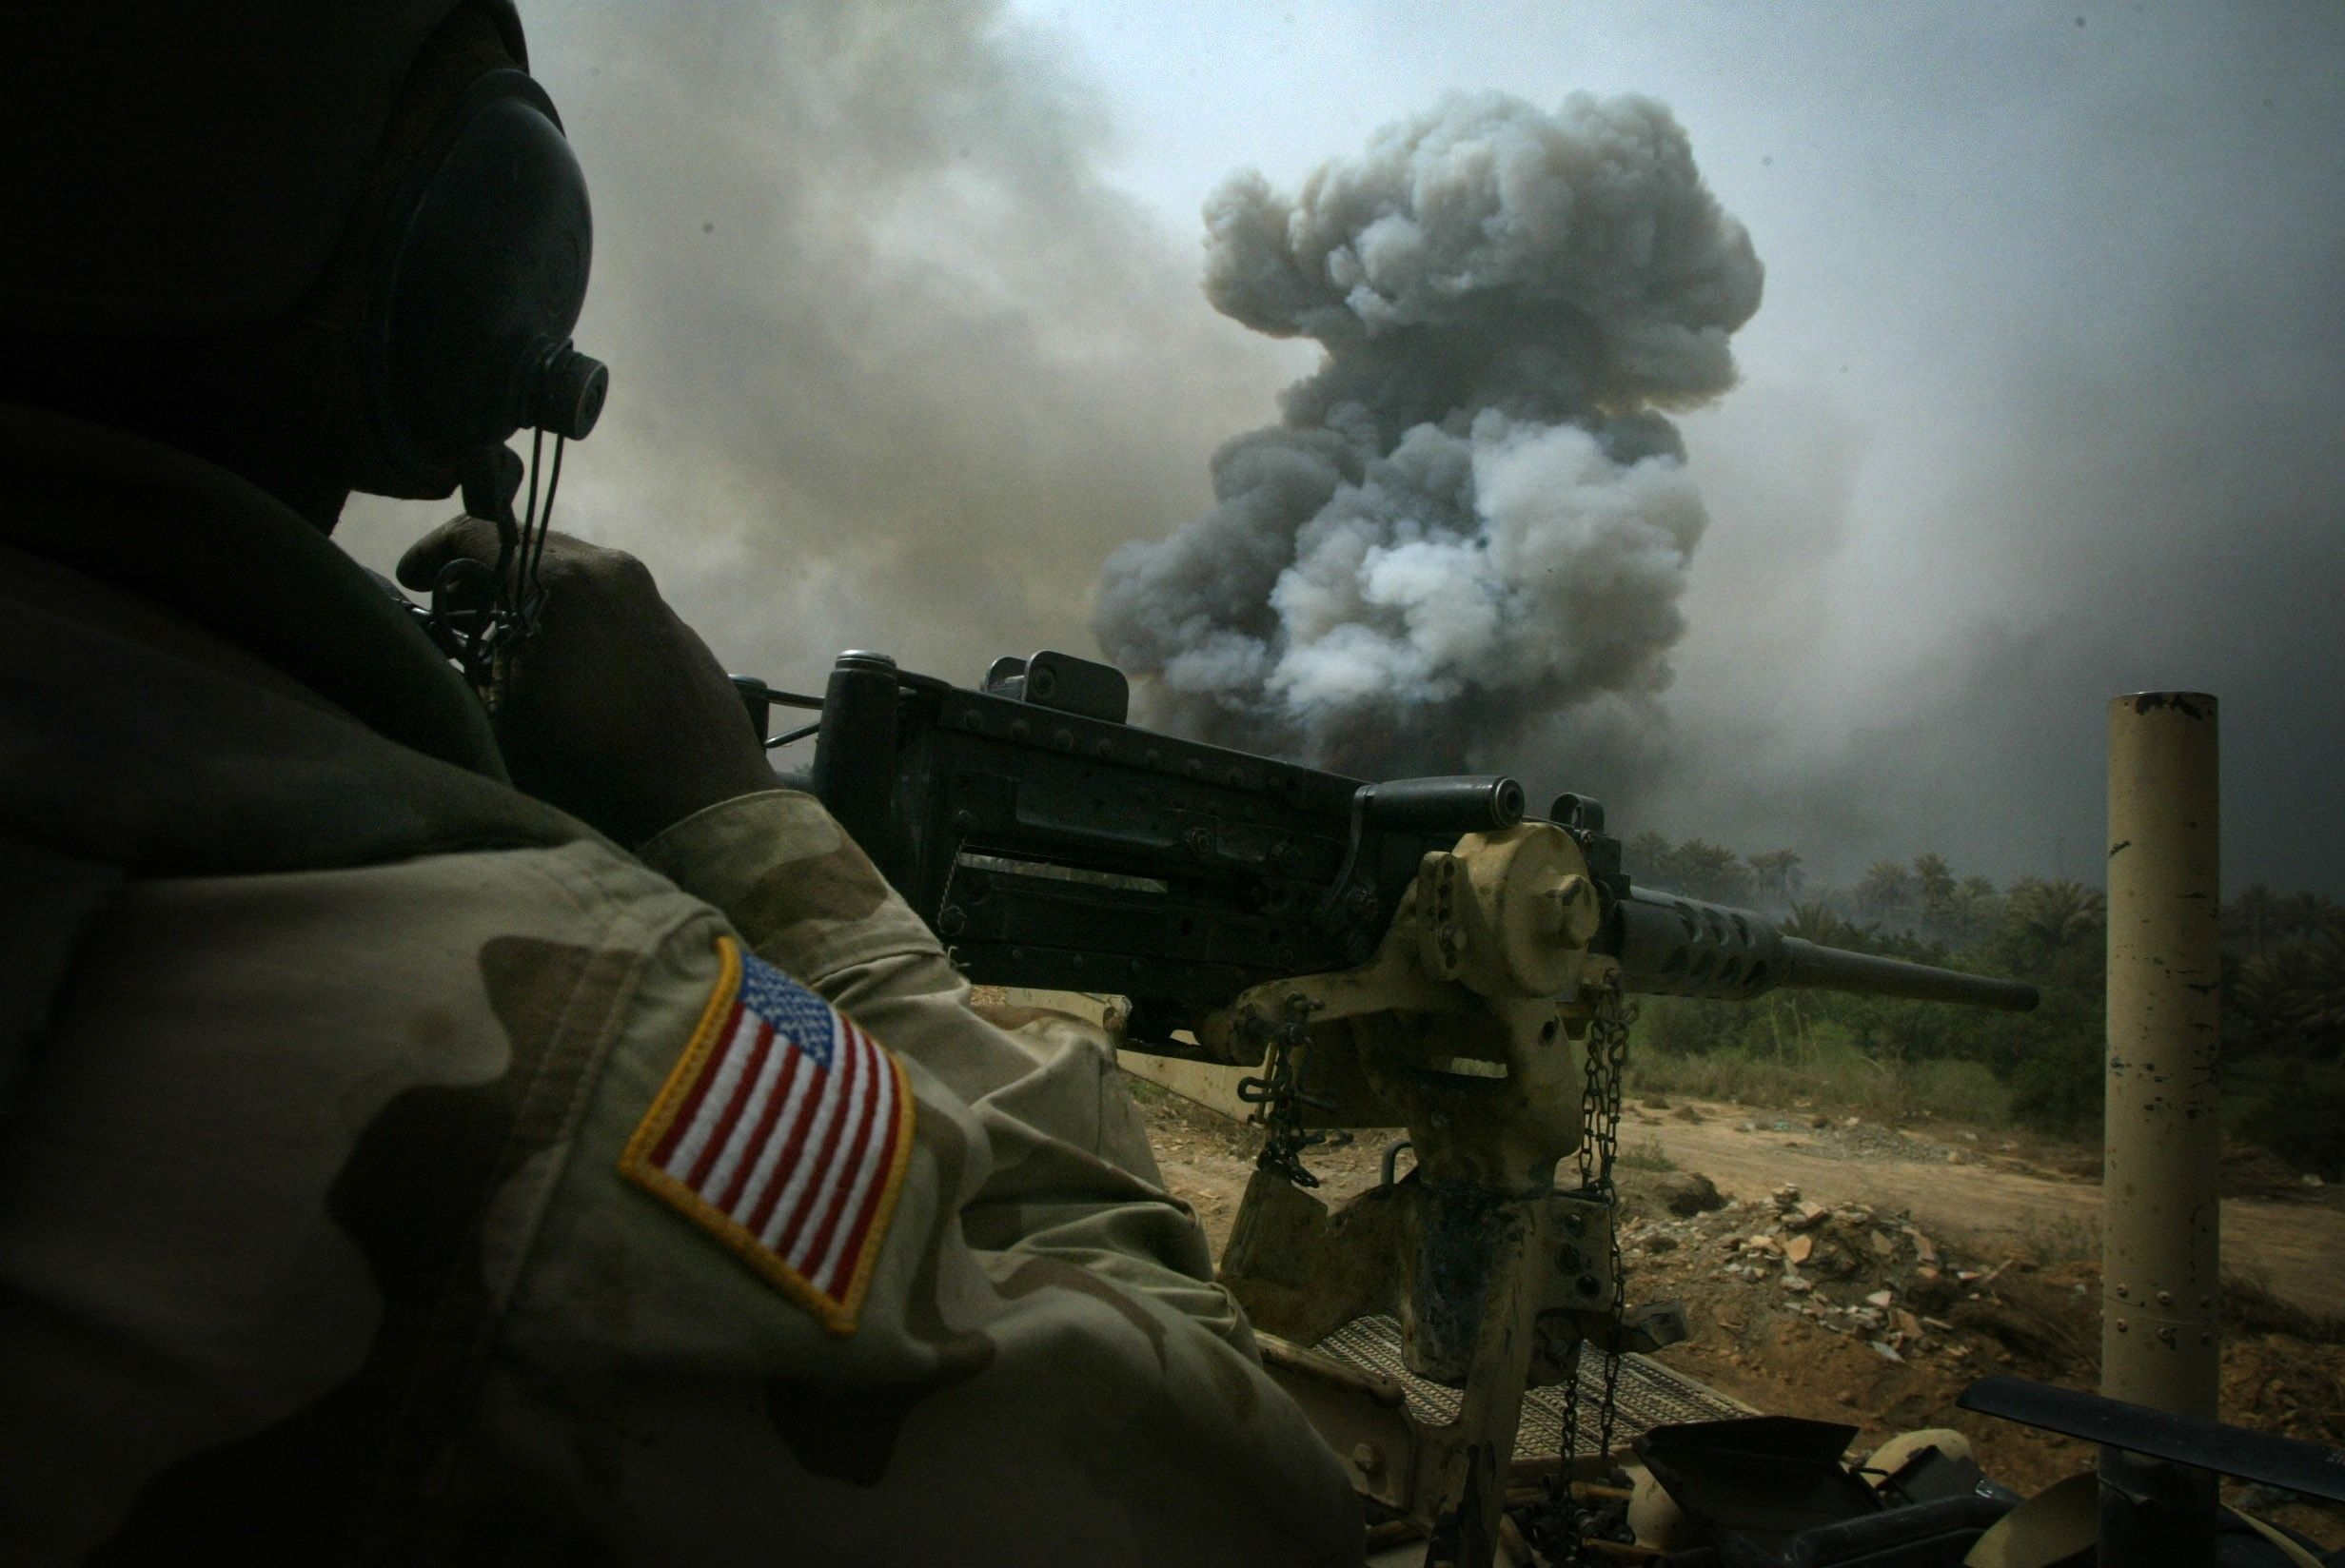 49 us army screensavers and wallpaper on wallpapersafari - Military screensavers wallpapers ...